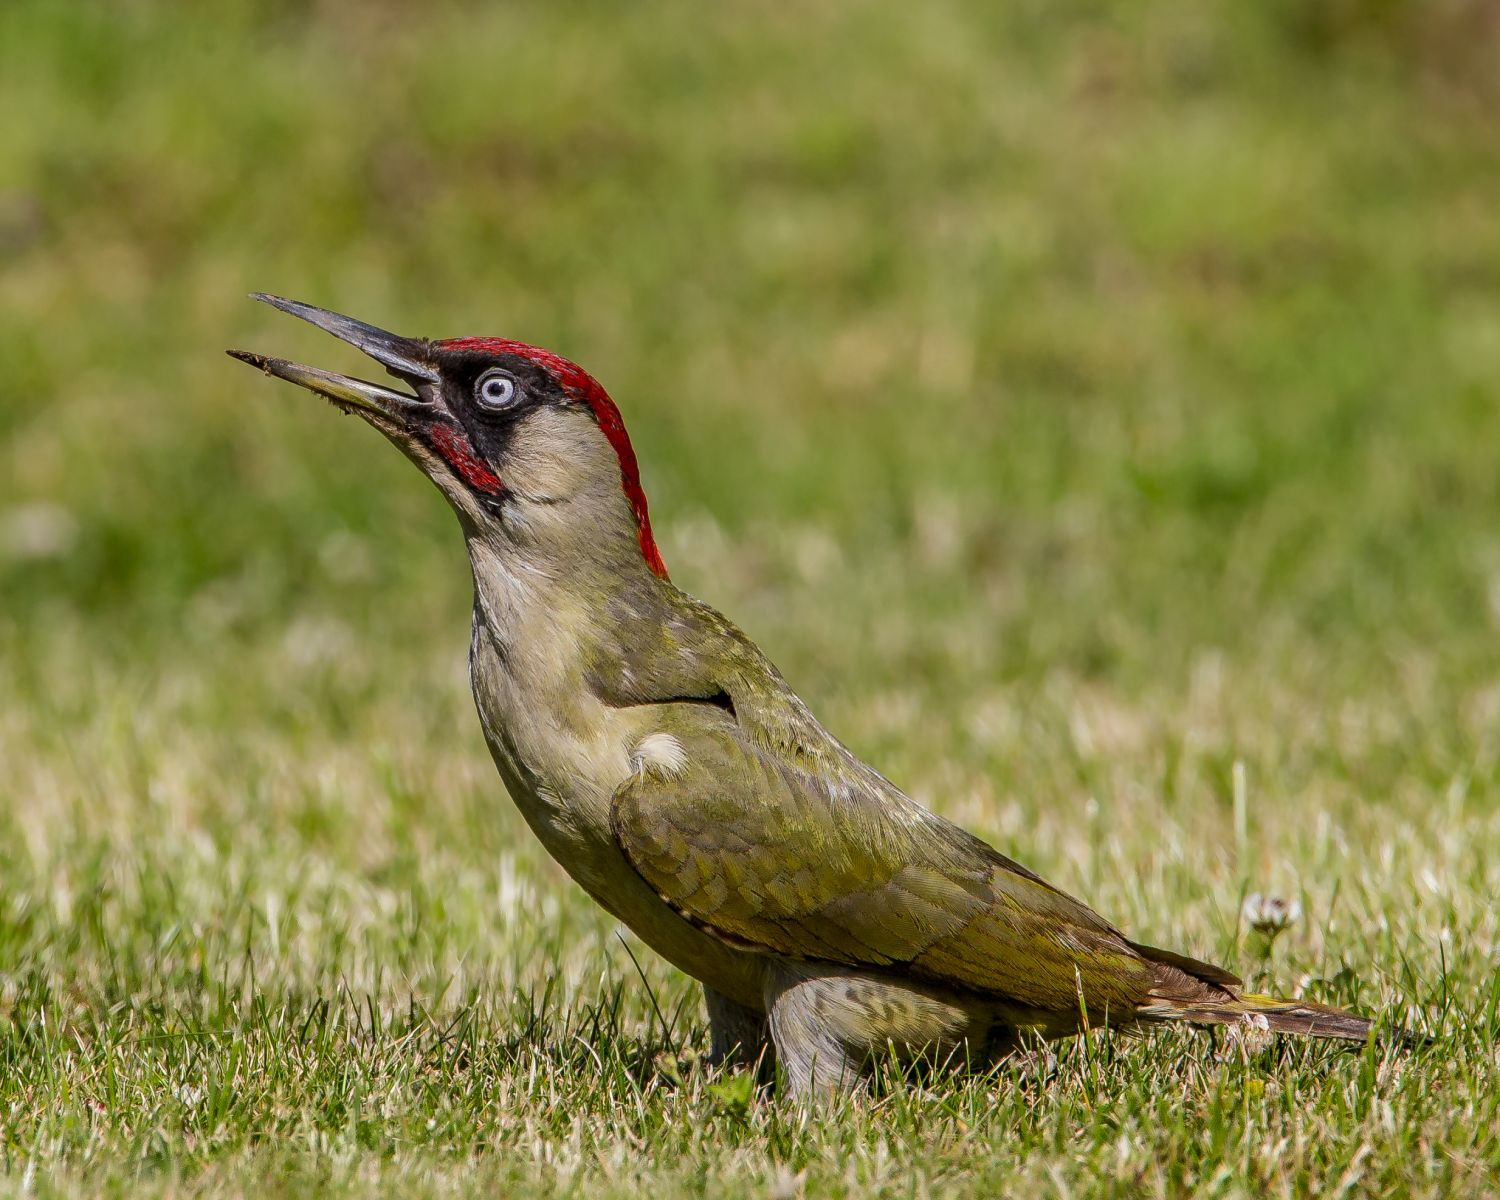 Green woodpecker stands neck outstretched.